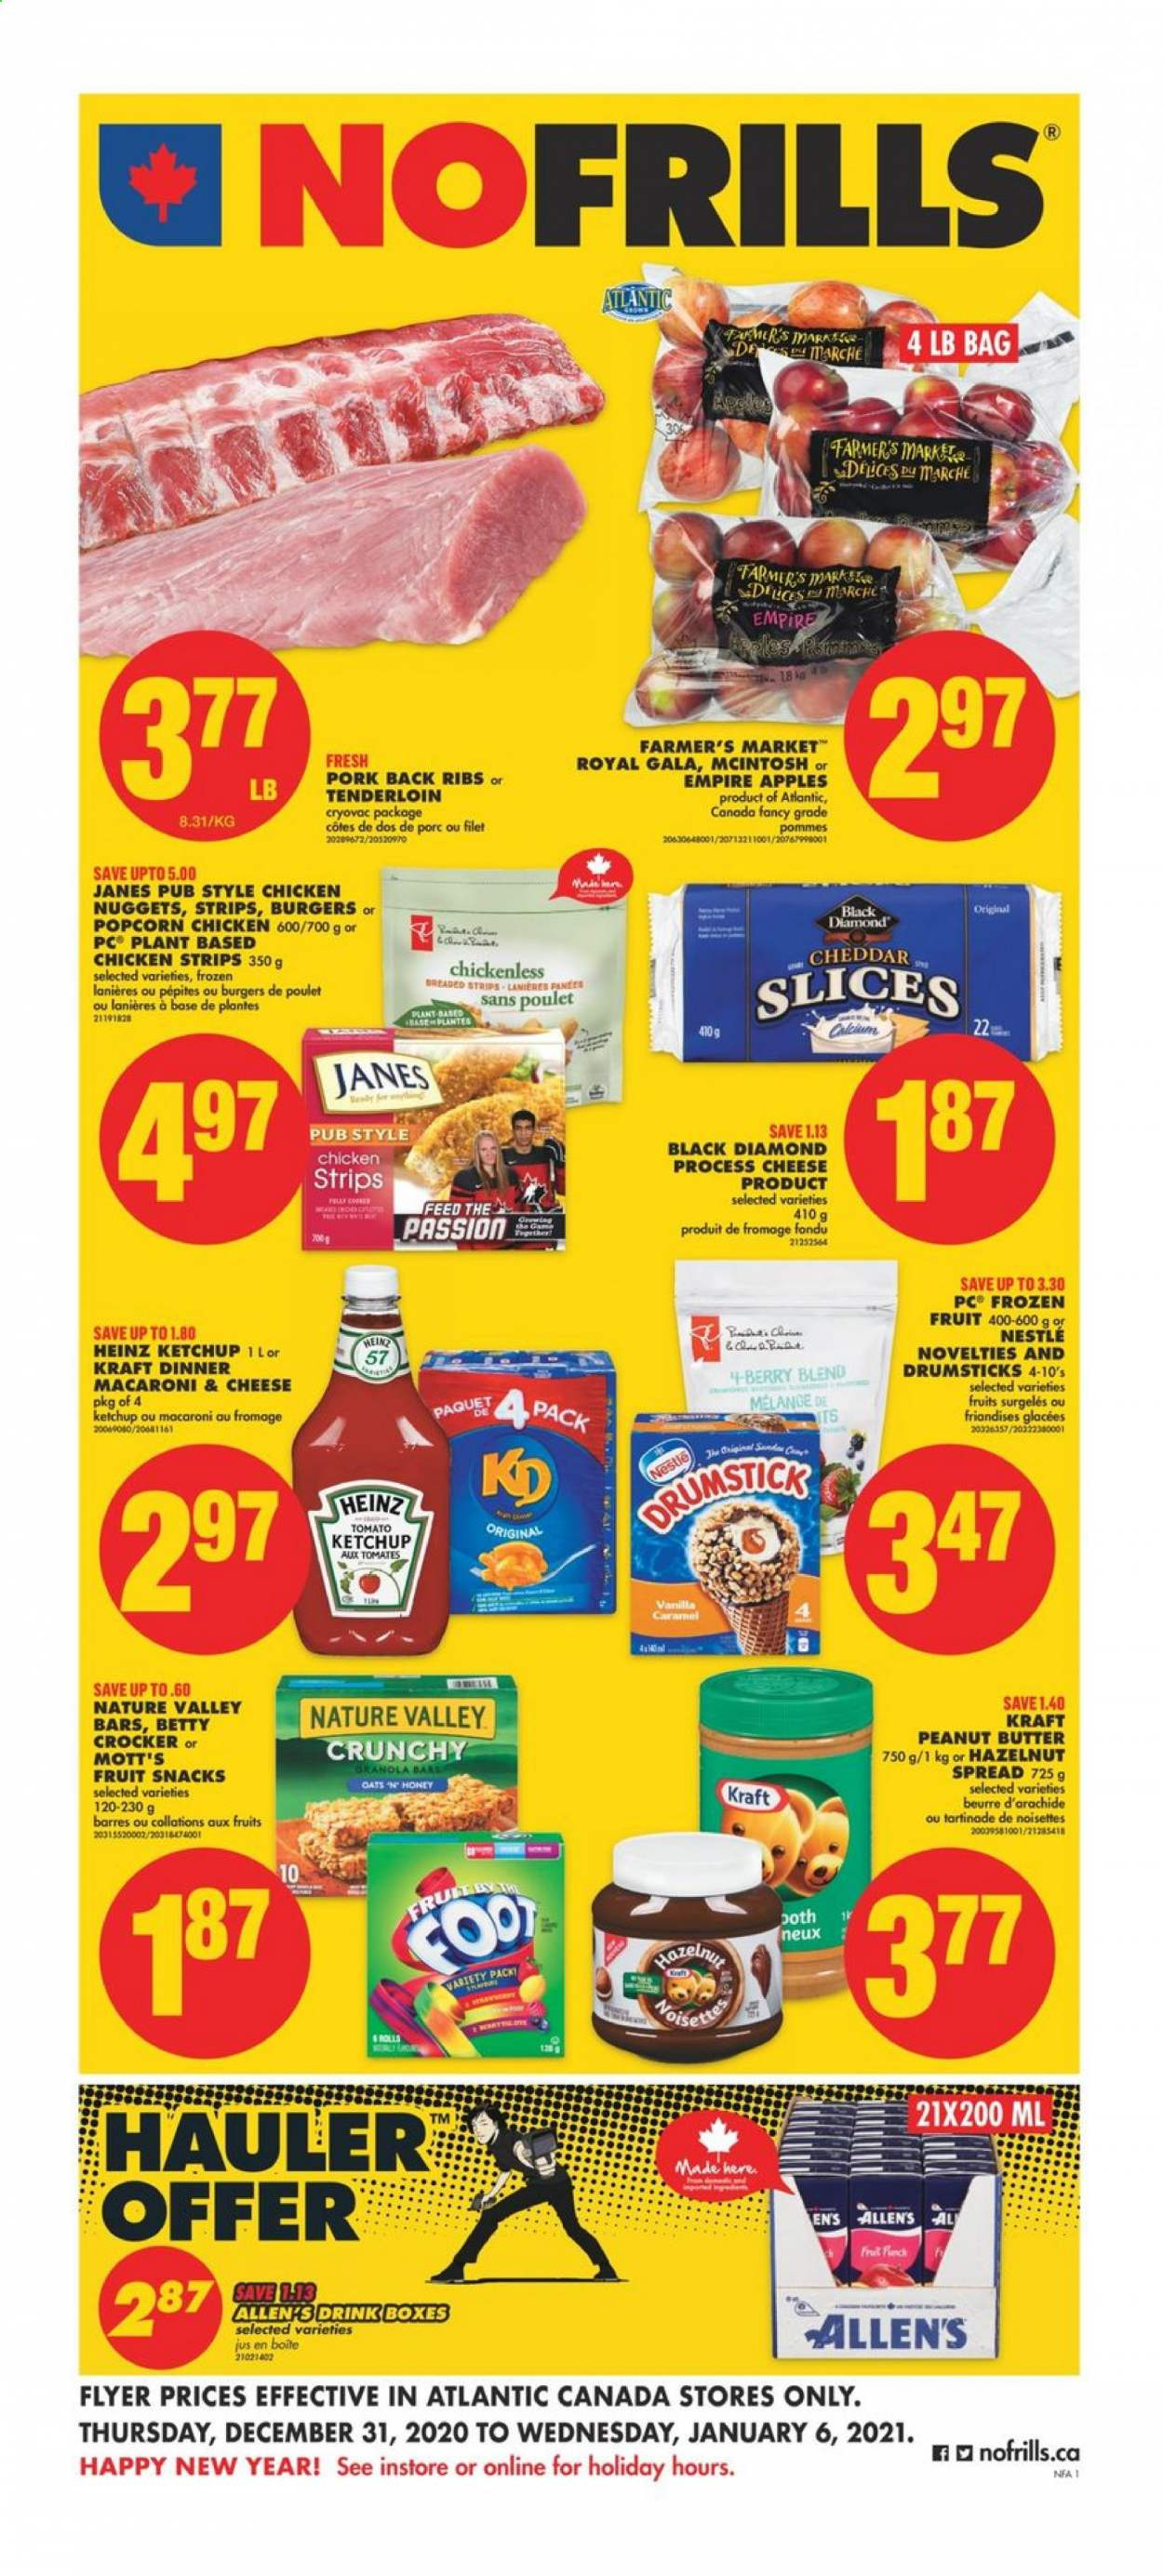 No Frills Flyer - December 31, 2020 - January 06, 2021 - Sales products - apples, bag, butter, calcium, caramel, frozen, granola, granola bars, macaroni & cheese, Nestlé, Heinz, ketchup, pork meat, cheddar, chicken, peanut butter, peanuts, cheese, macaroni, snack, nuggets, punch, ribs, Apple, box, burger. Page 1.